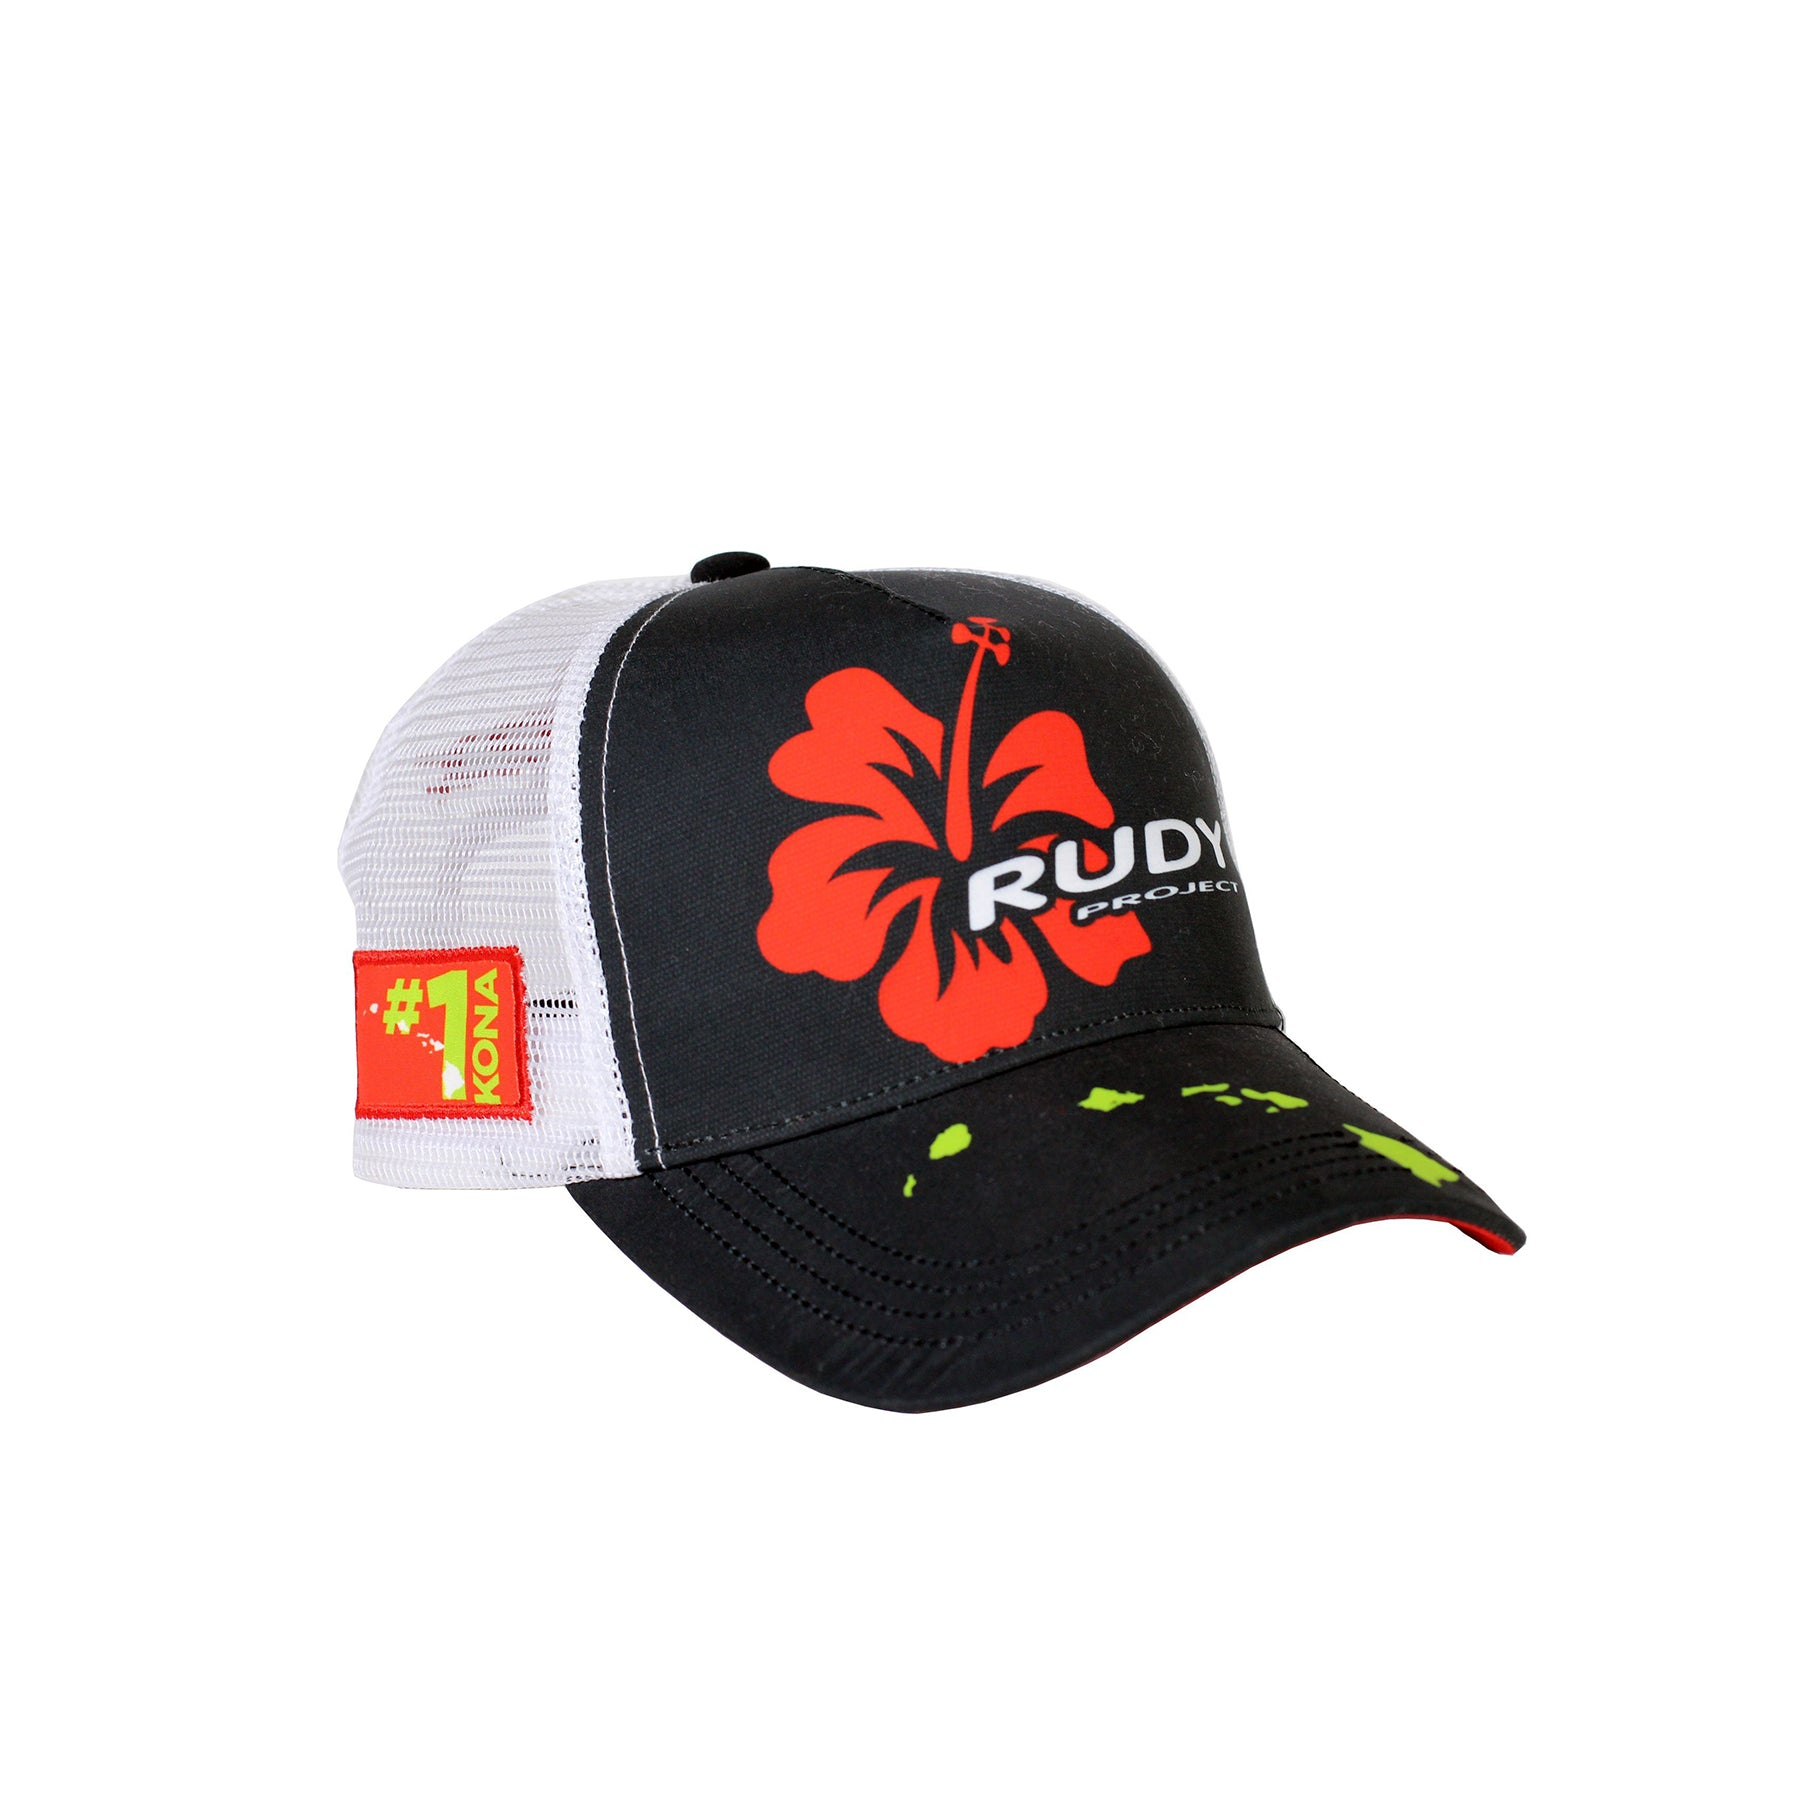 Kona Edition Trucker Hat